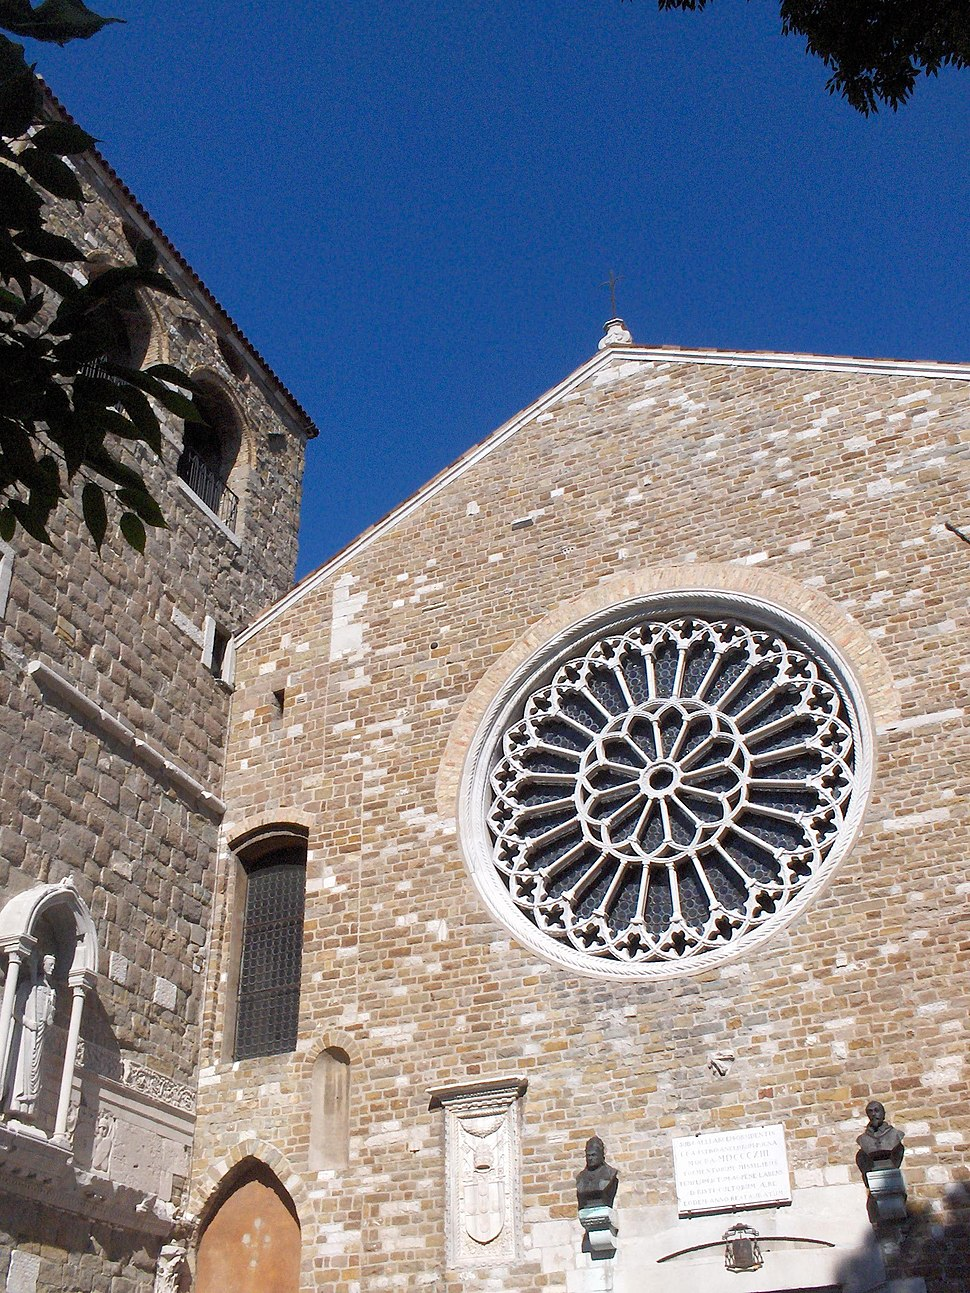 Triestecathedral2